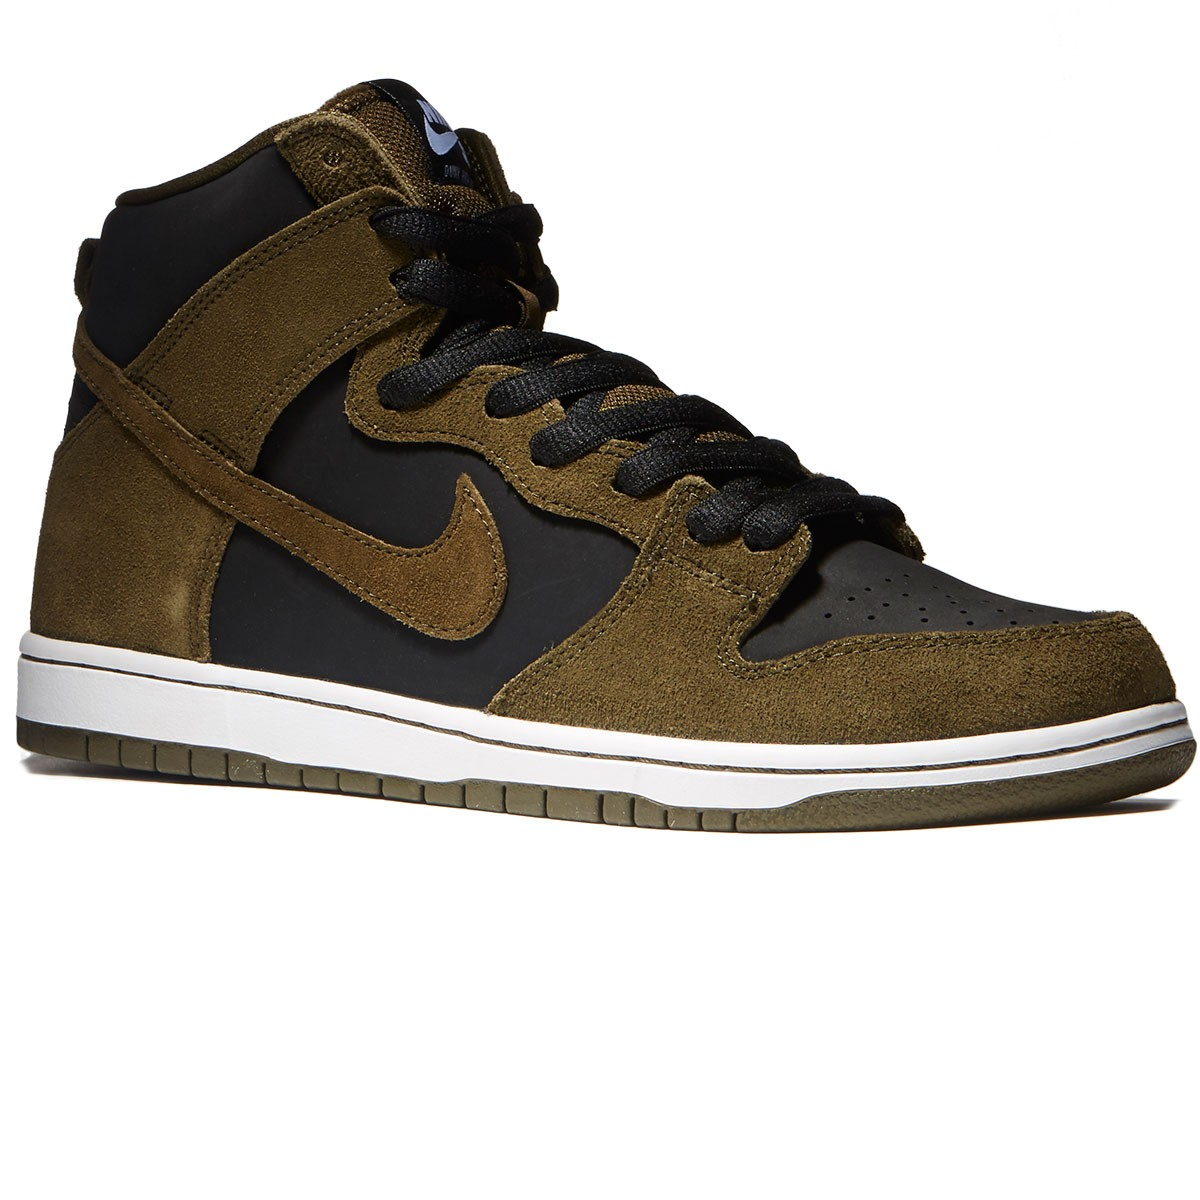 Nike Dunk High Pro SB Shoes - Dark Loden/Black/White - 7.0